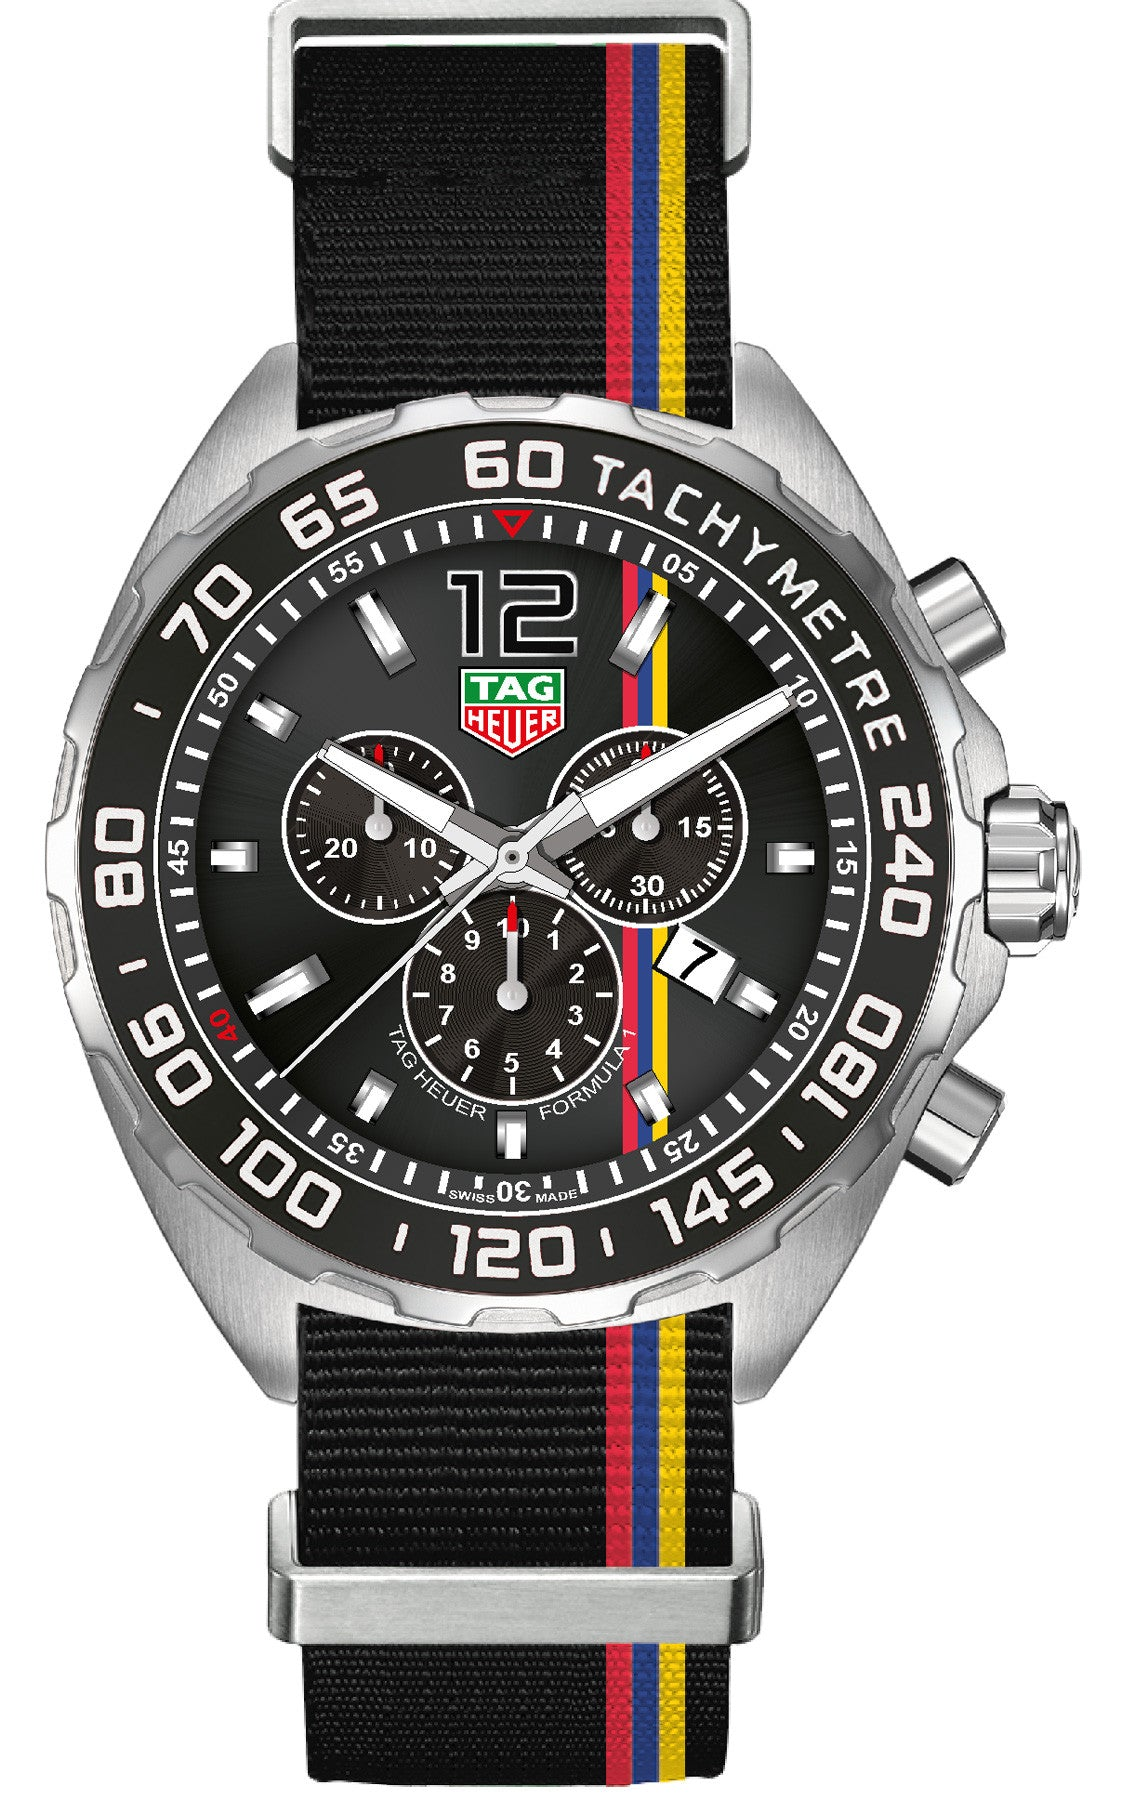 4357bc82951 TAG Heuer Watch Formula 1 James Hunt Limited Edition Supplier Model ...